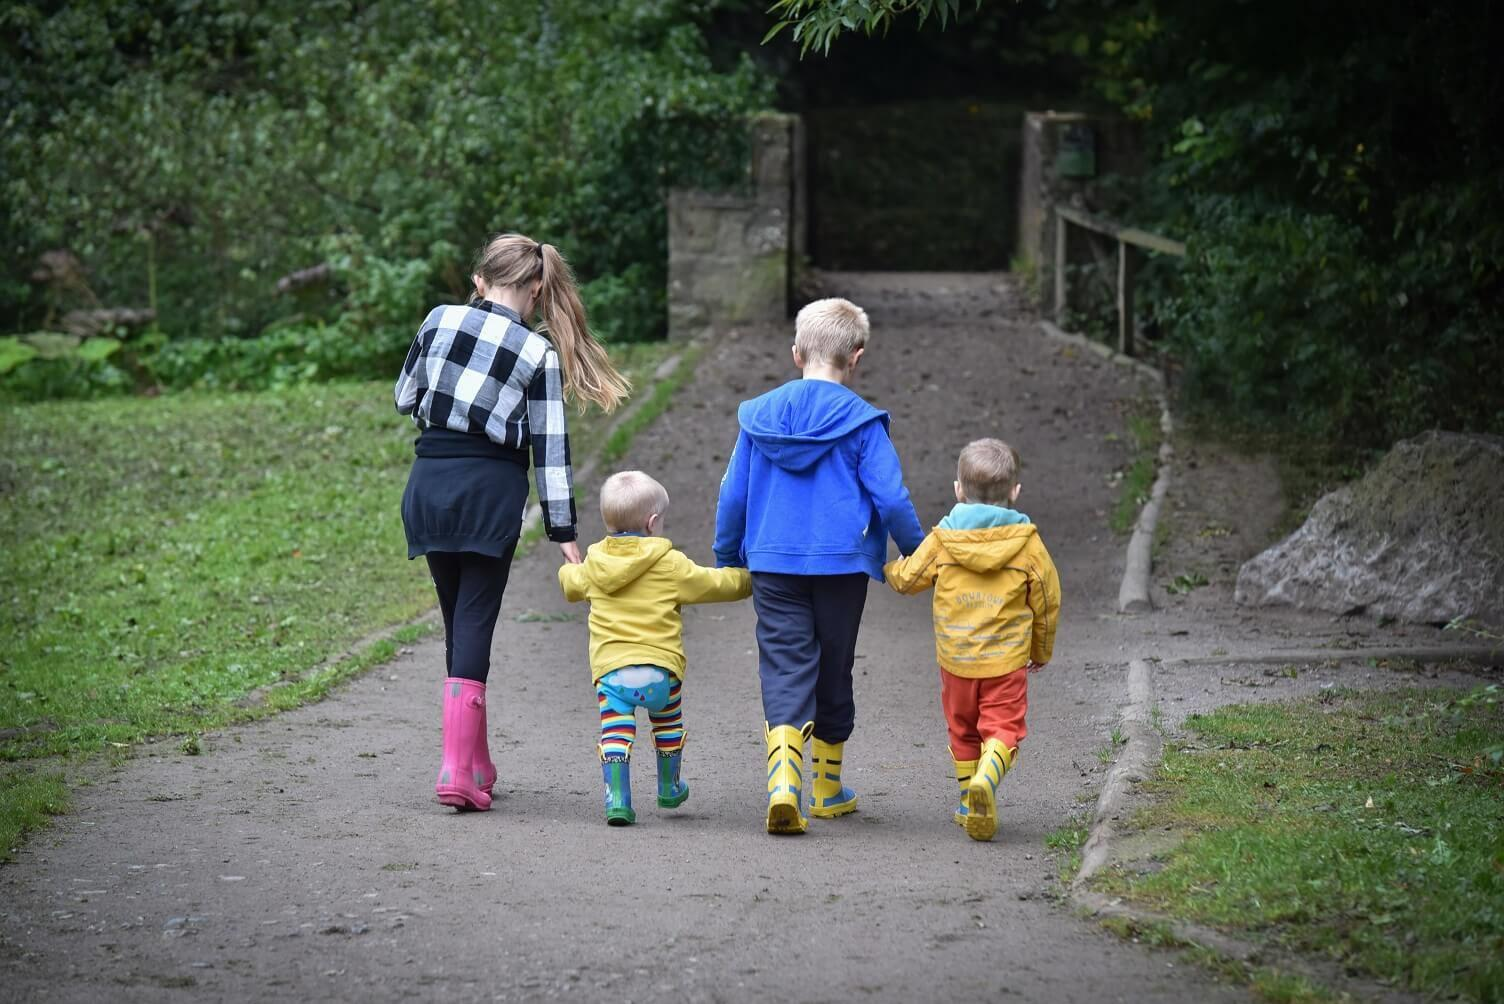 Nurturing the fathers of the future | Raising Boys, family walk%, daily-dad, new-dad%